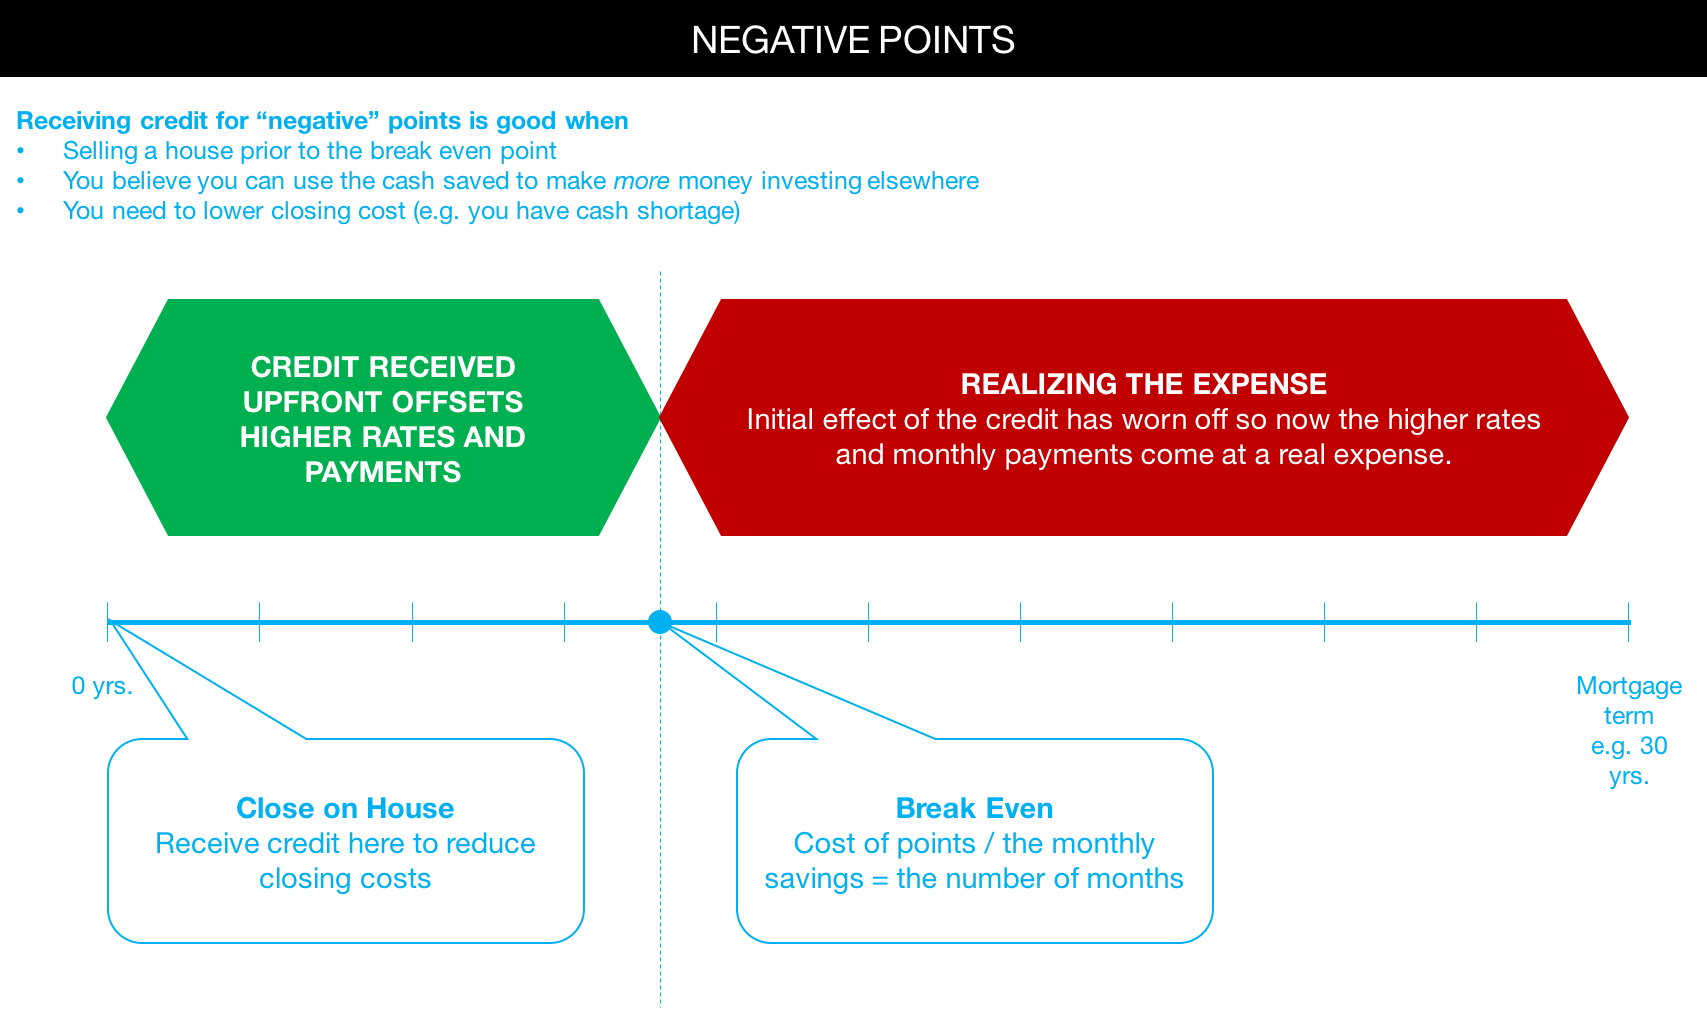 Negative Points